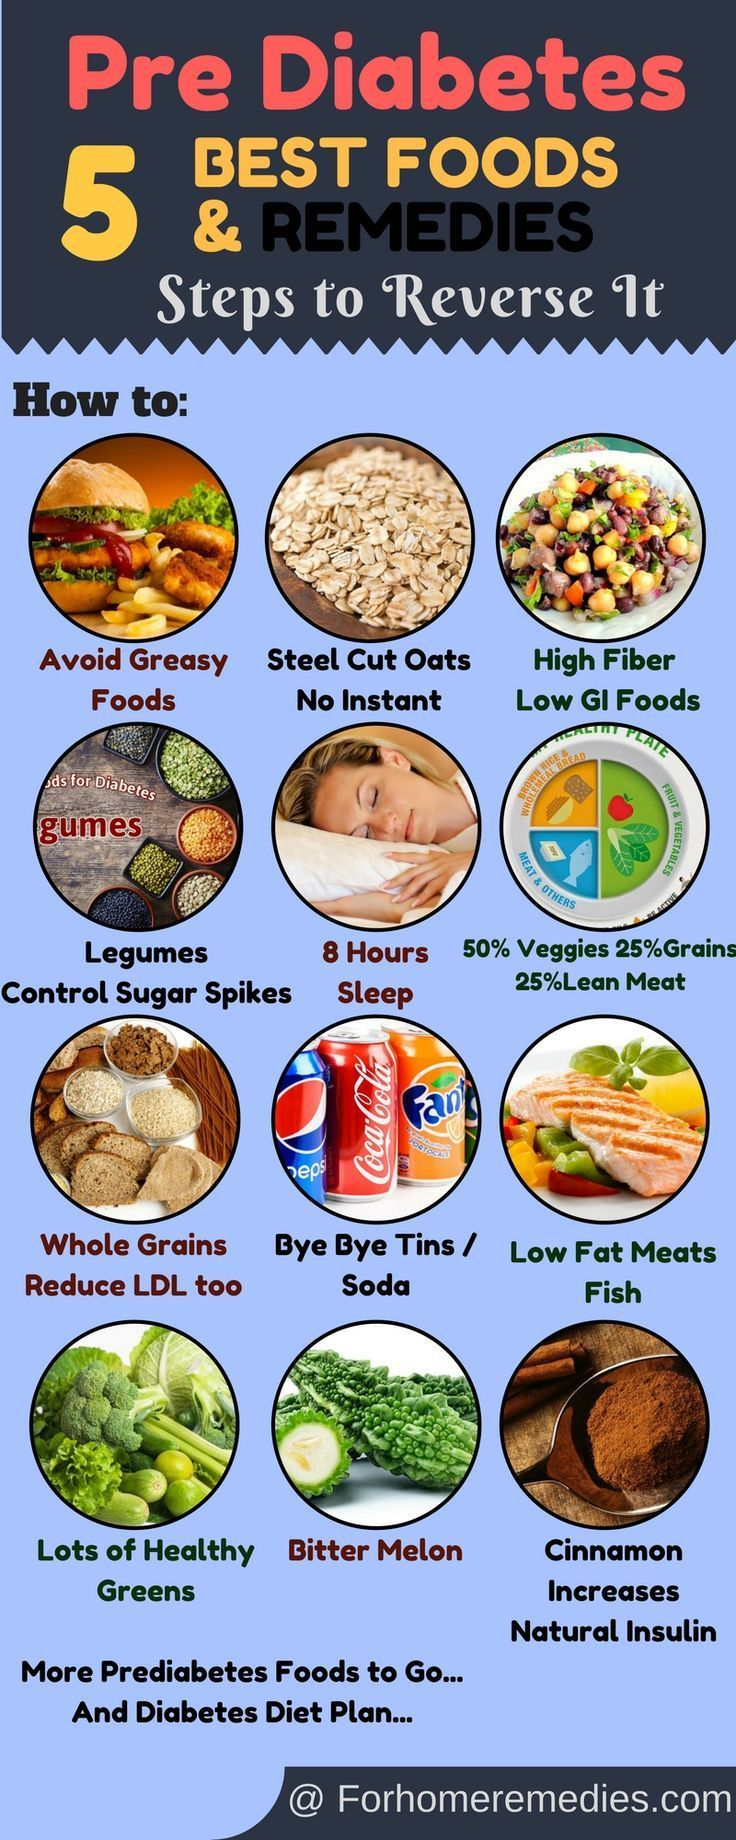 Best foods and diet plan for pre-diabetes and diabetes home remedies: Check for the list of best foods for pre-diabetes. 2.Supplements 3.Foods to avoid 4.Home Remedies 5.Diet Plan 6.Reversing Pre-diabetes 7.Stress Pre-diabetes no sugar diet plan